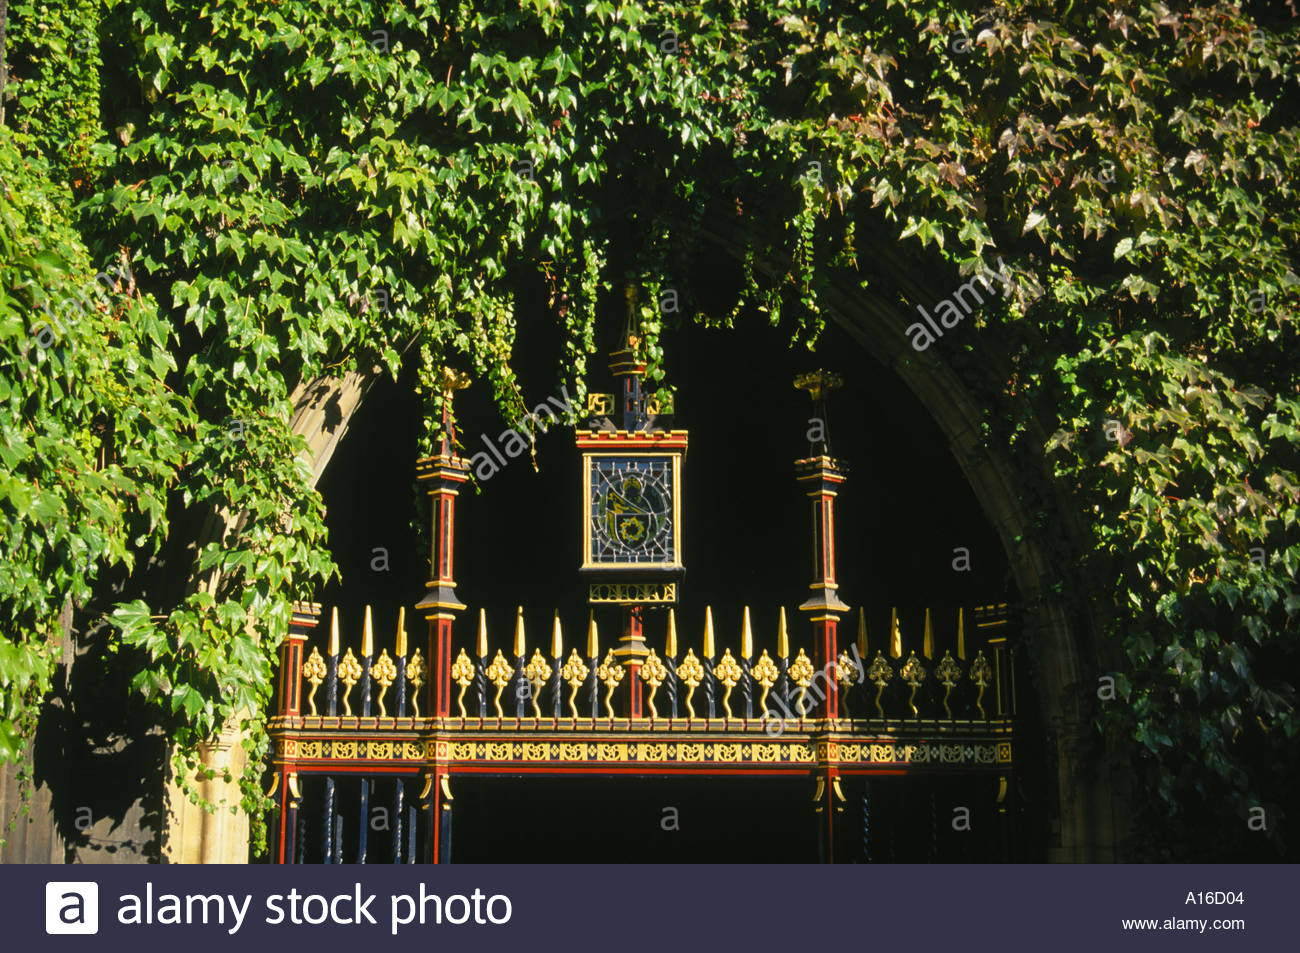 Dean's Yard, near West Door of Westminster Abbey, Westminster, London, England, UK - Stock Image